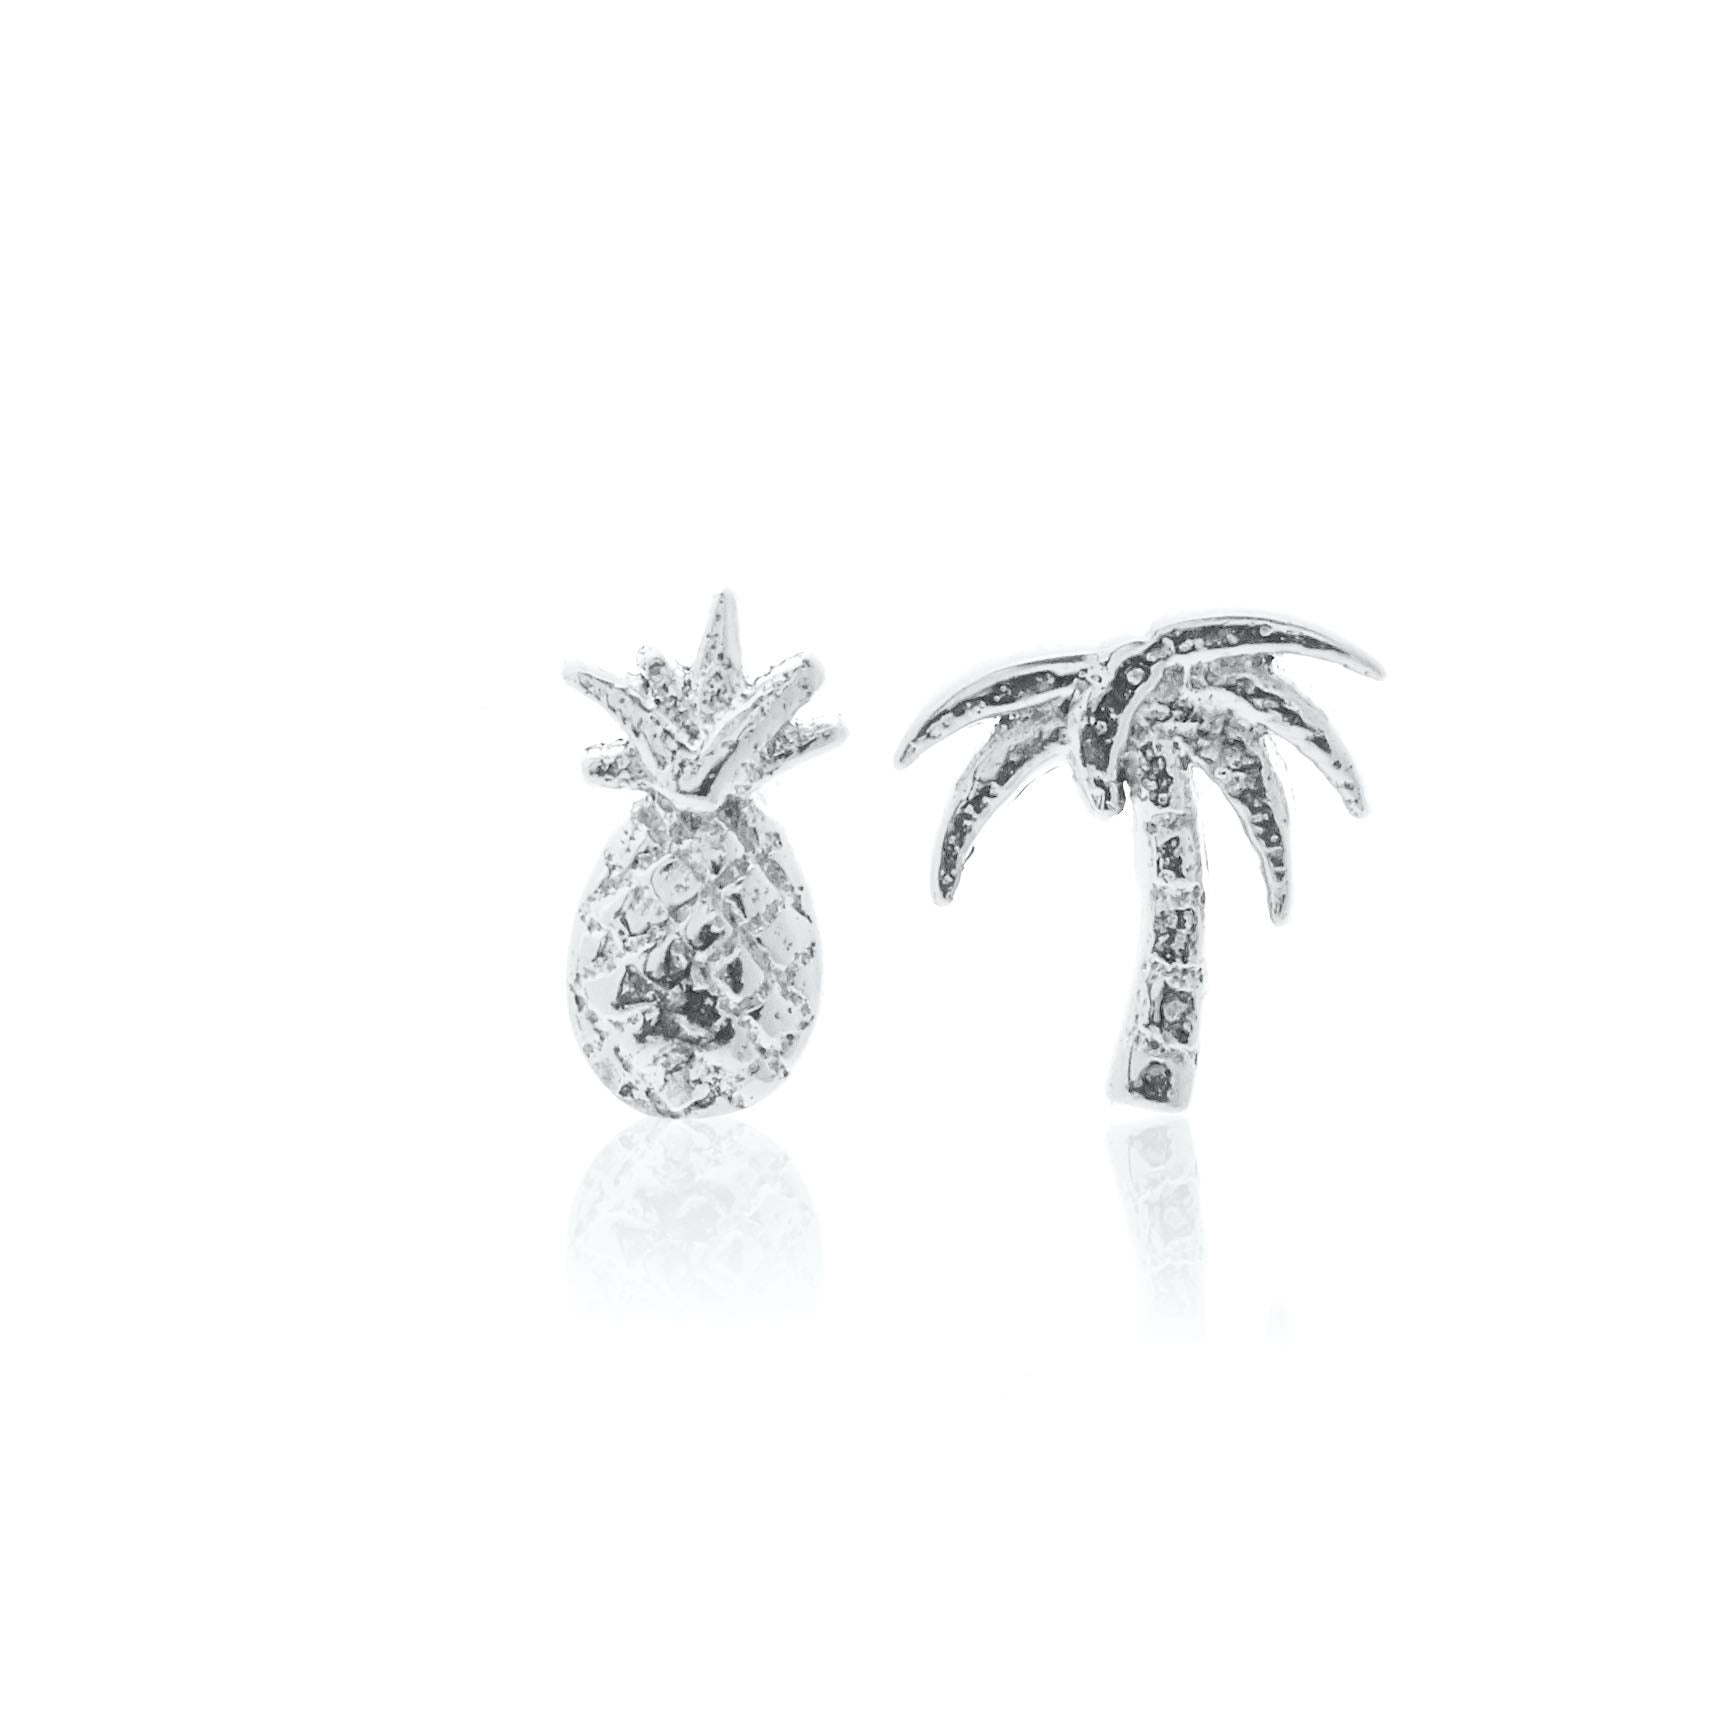 Silk & Steel Jewellery Superfine Pina Colada Pineapple and Palm Tree stud earrings Silver